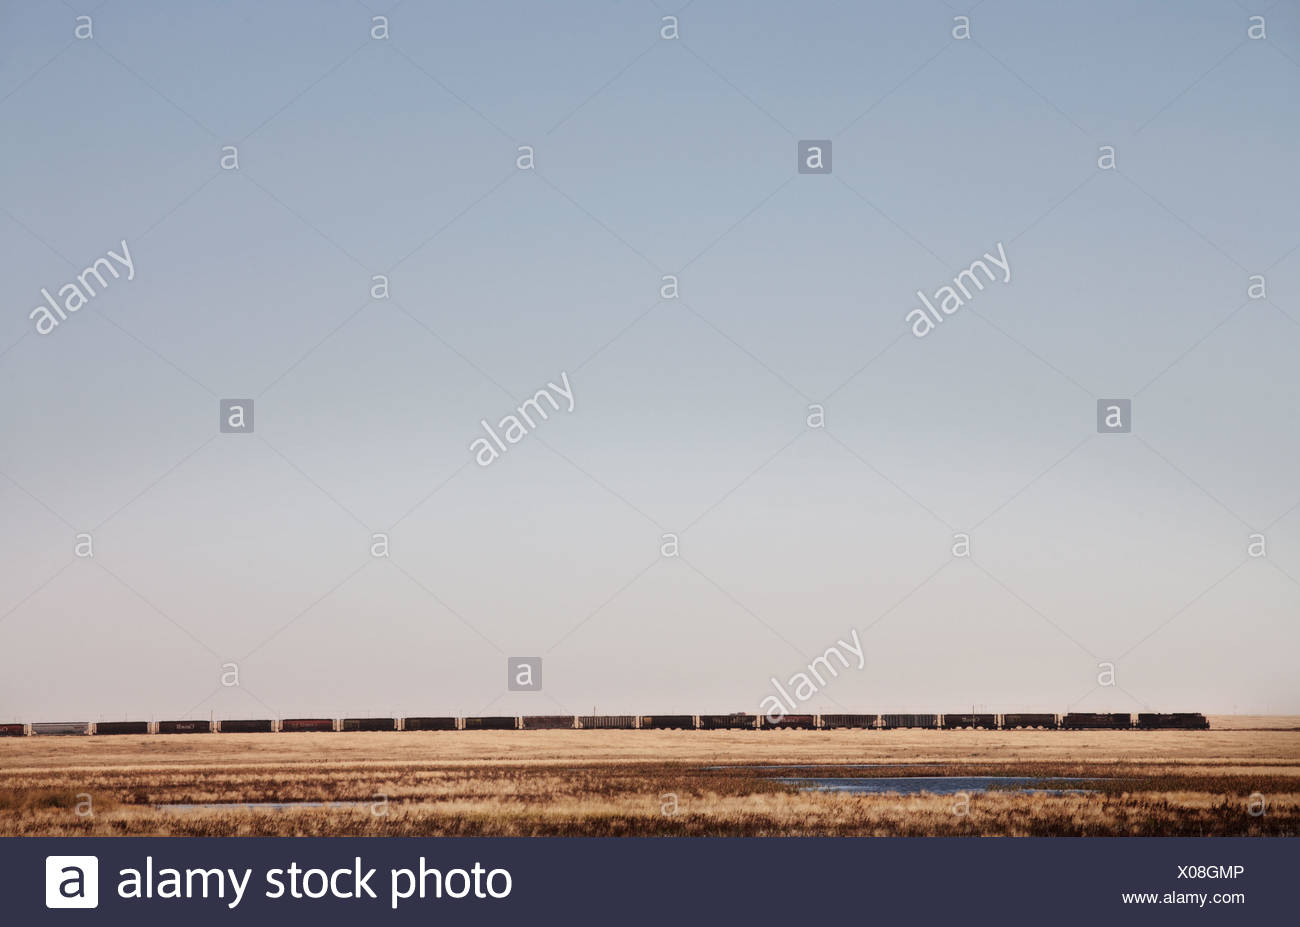 A train rolls across the Canadian prairies in southern Alberta. - Stock Image